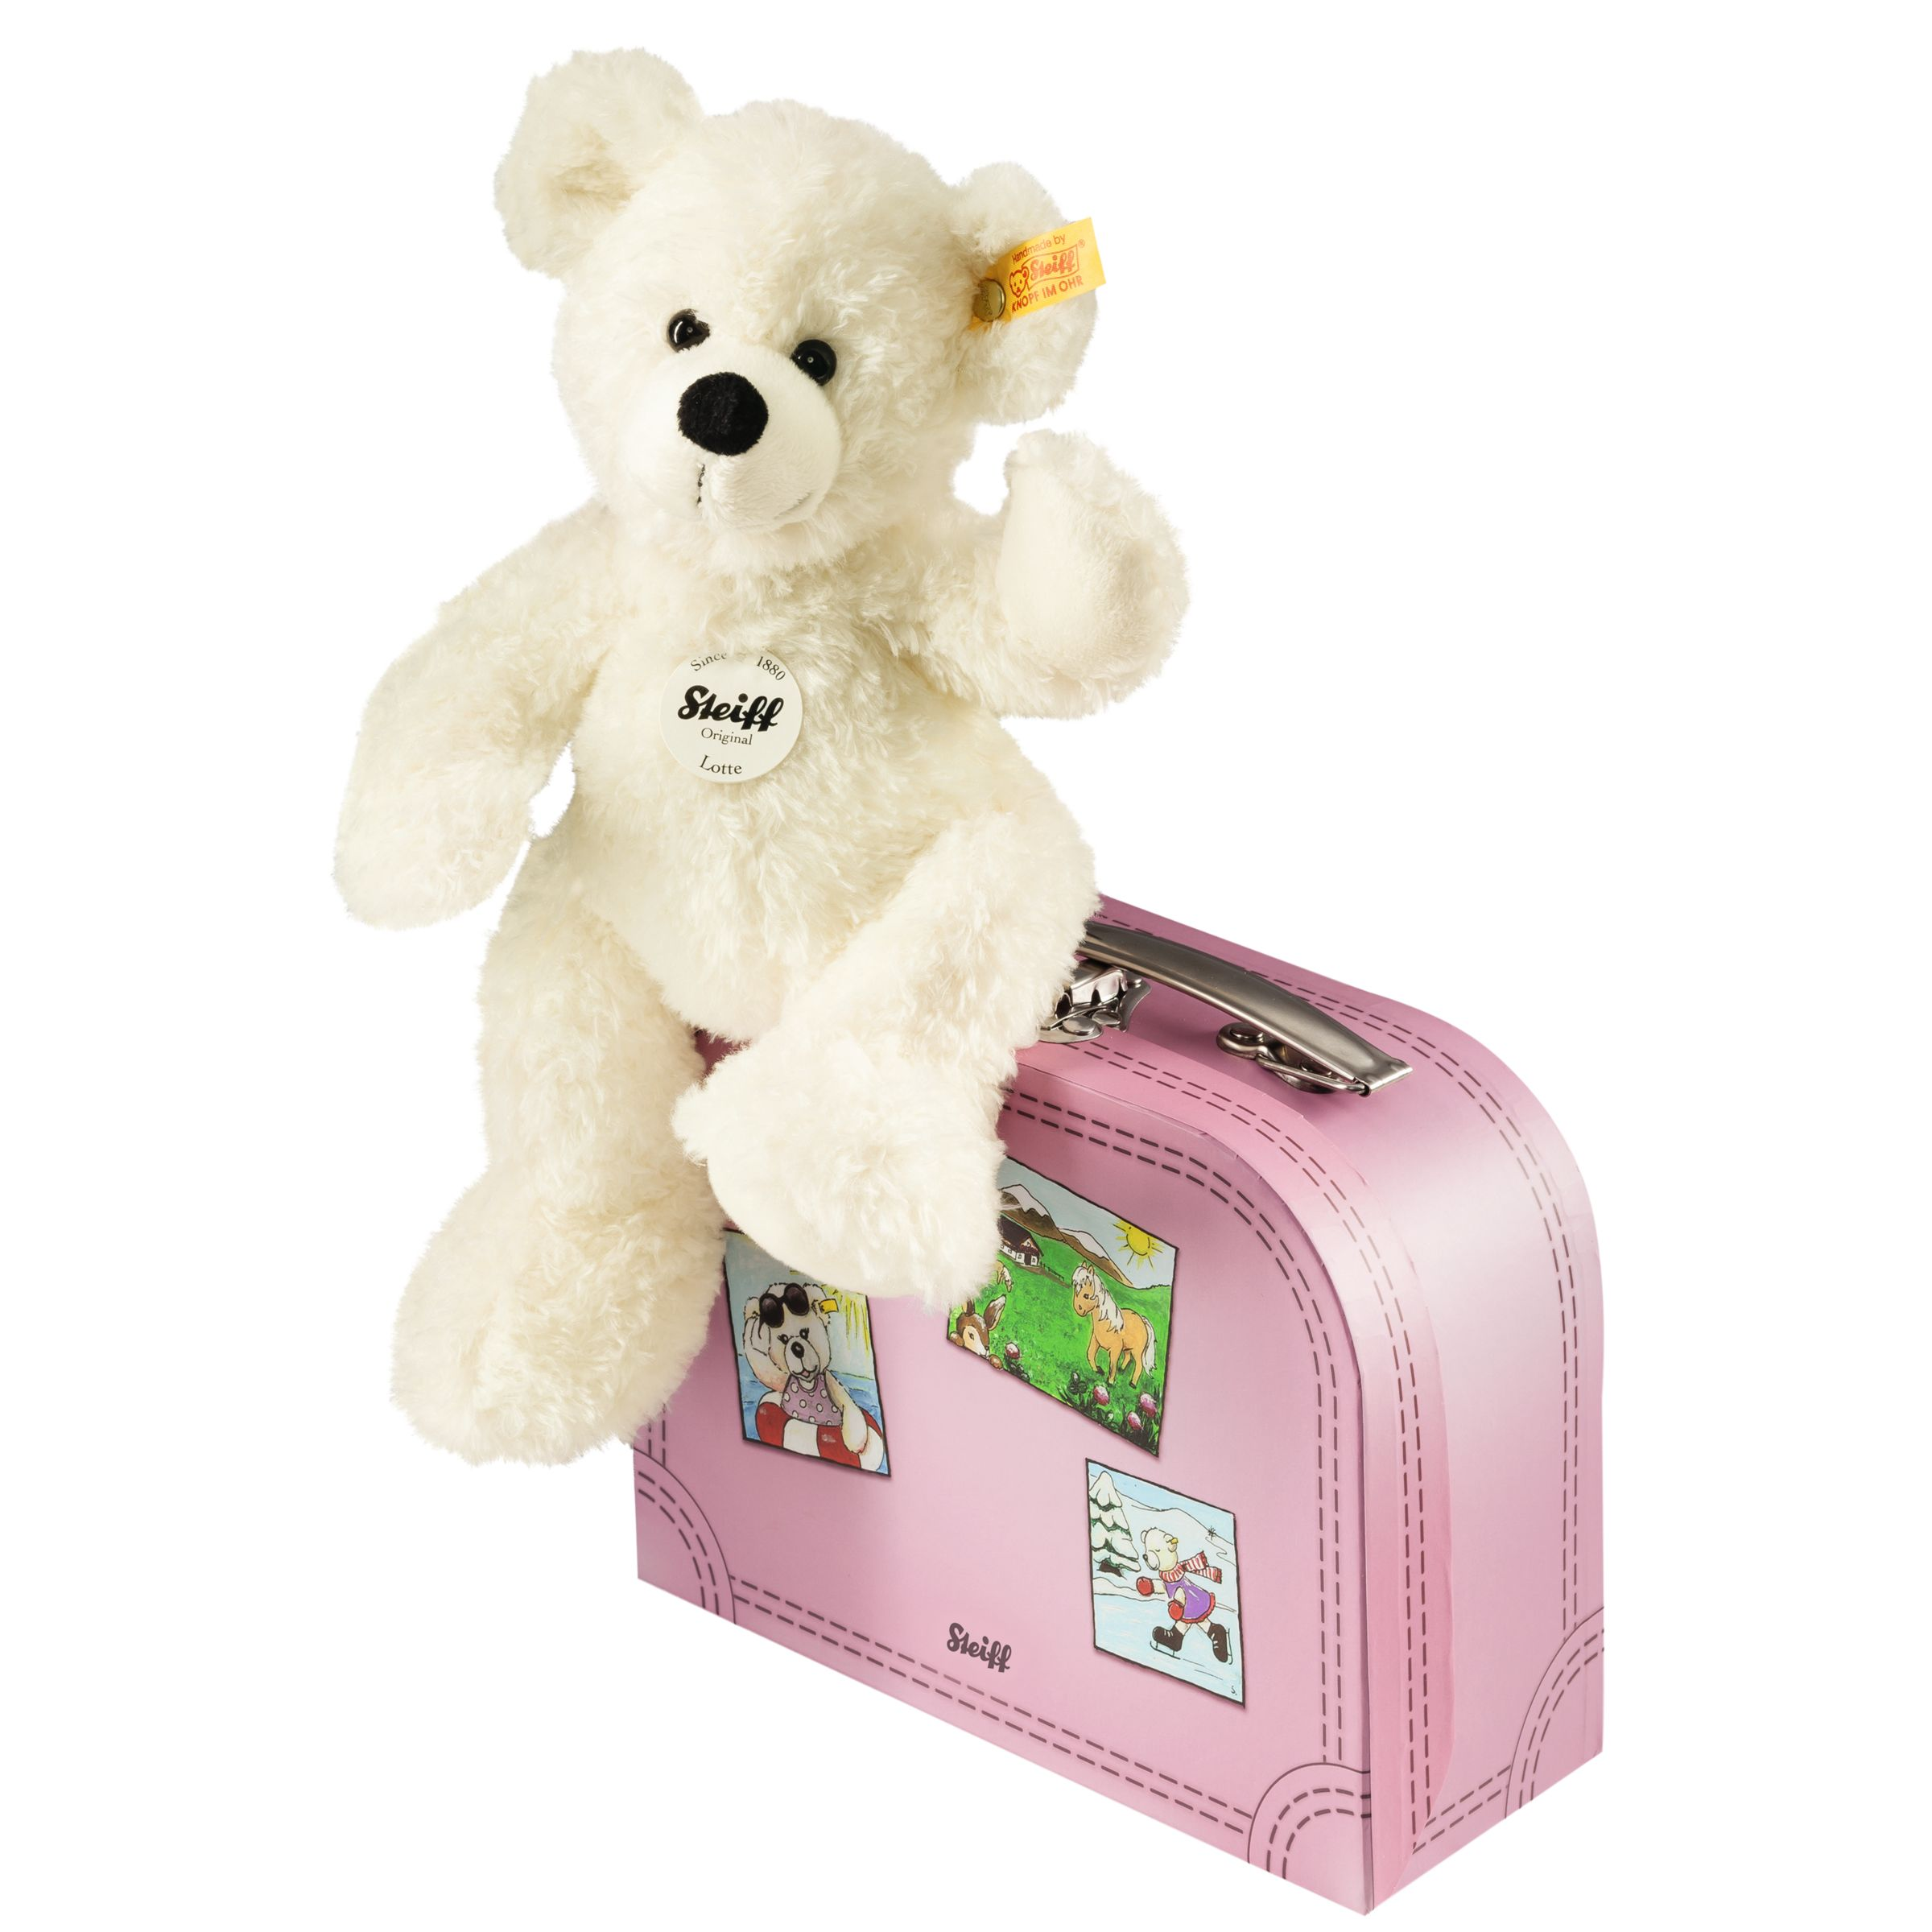 Steiff Steiff Lotte Teddy Bear in a Suitcase Soft Toy